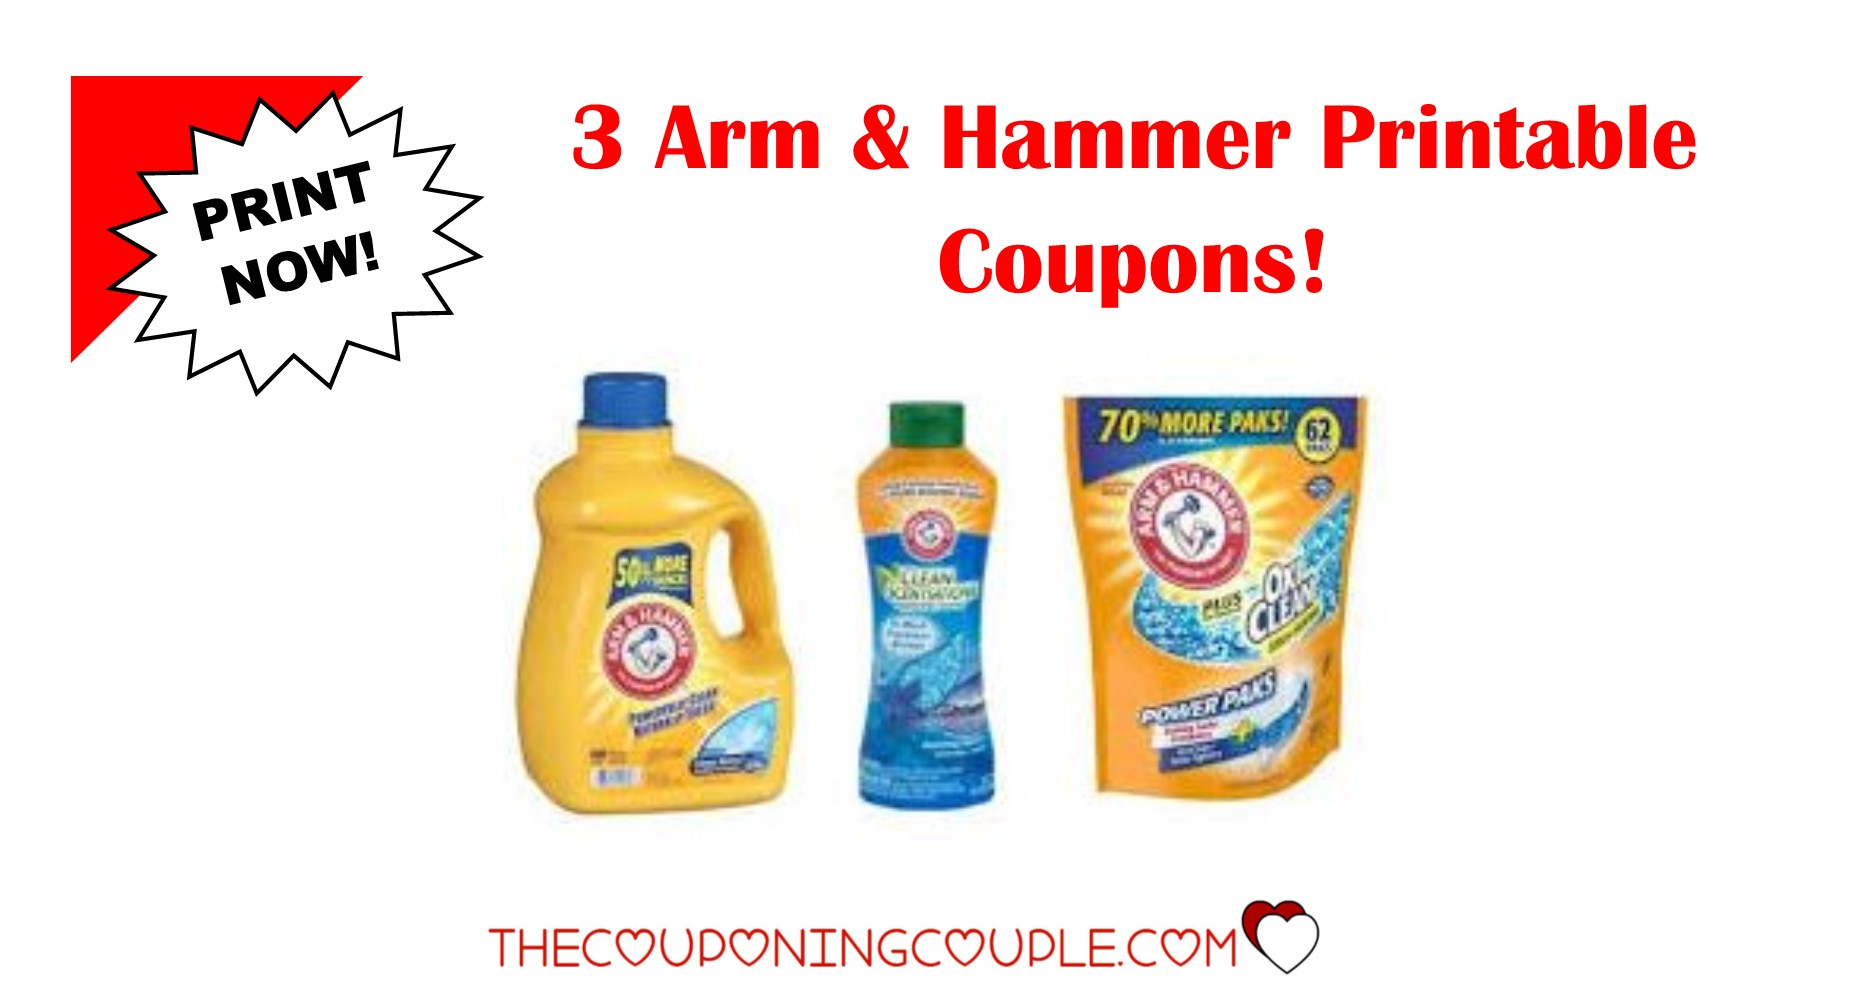 3 Arm & Hammer Printable Coupons ~ Print Now!! Don't Miss Out! - Free Detergent Coupons Printable